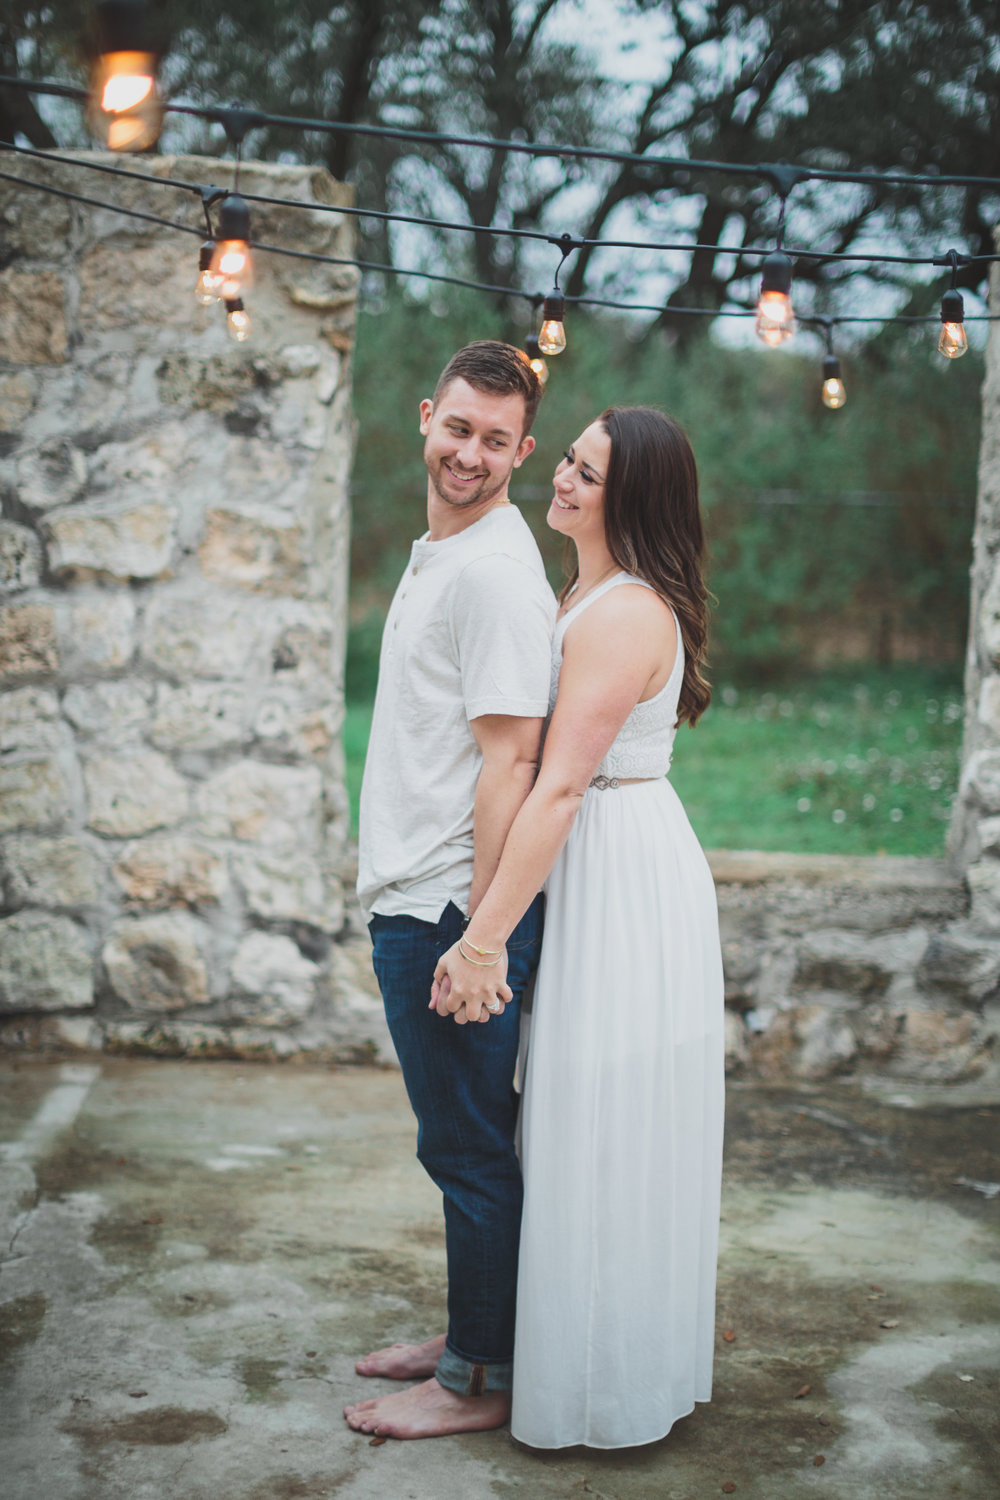 pedernales_engagement_session_23